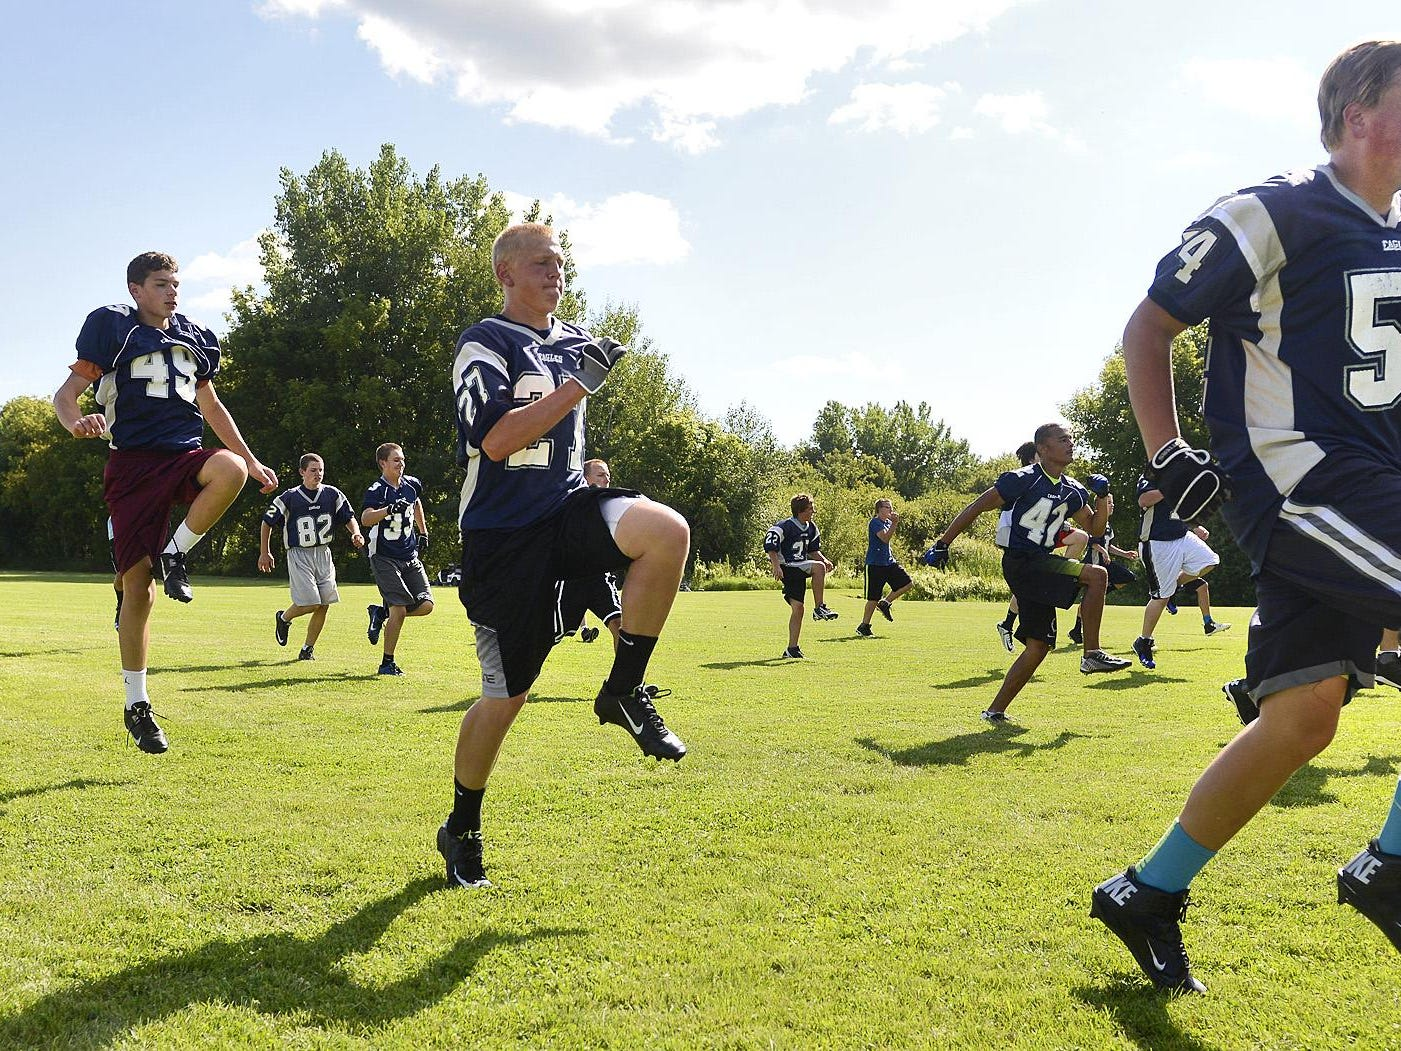 Eden Valley-Watkins players stretch and leap during warmups for practice Aug. 11 in Eden Valley.